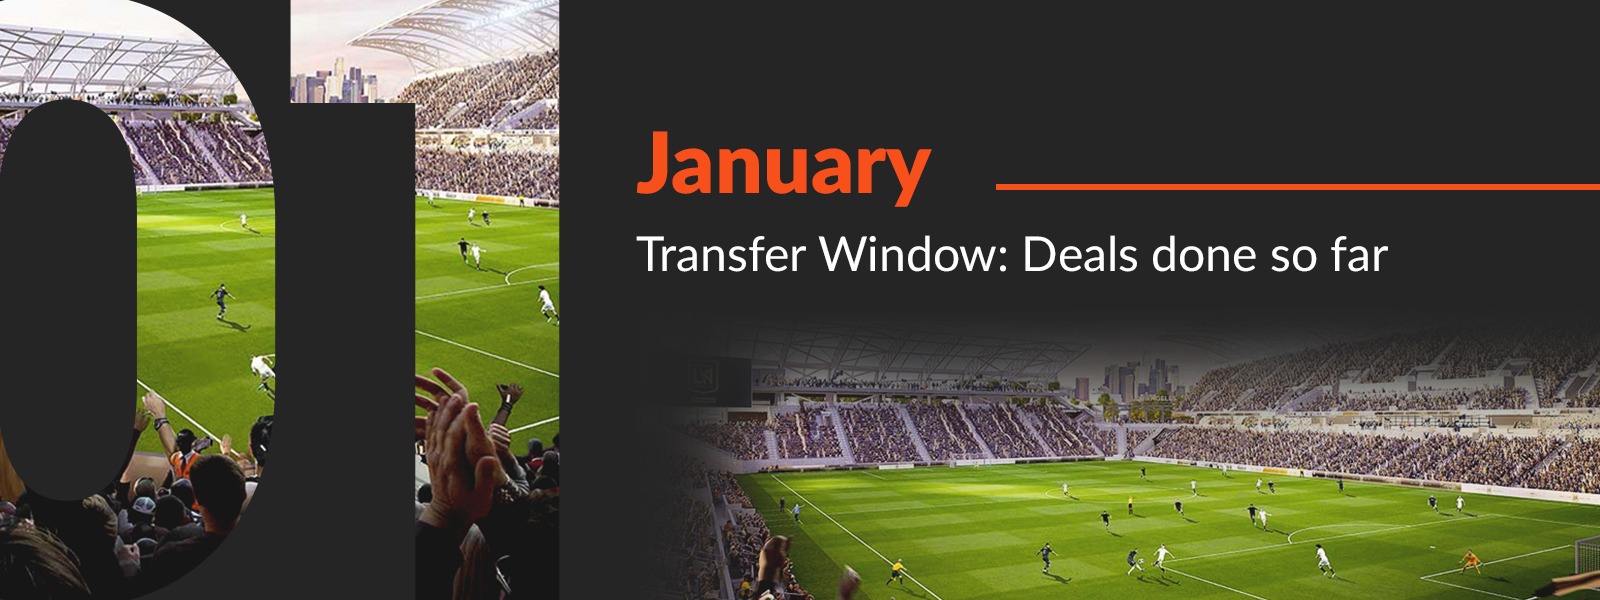 January Transfer Window: Deals done so far